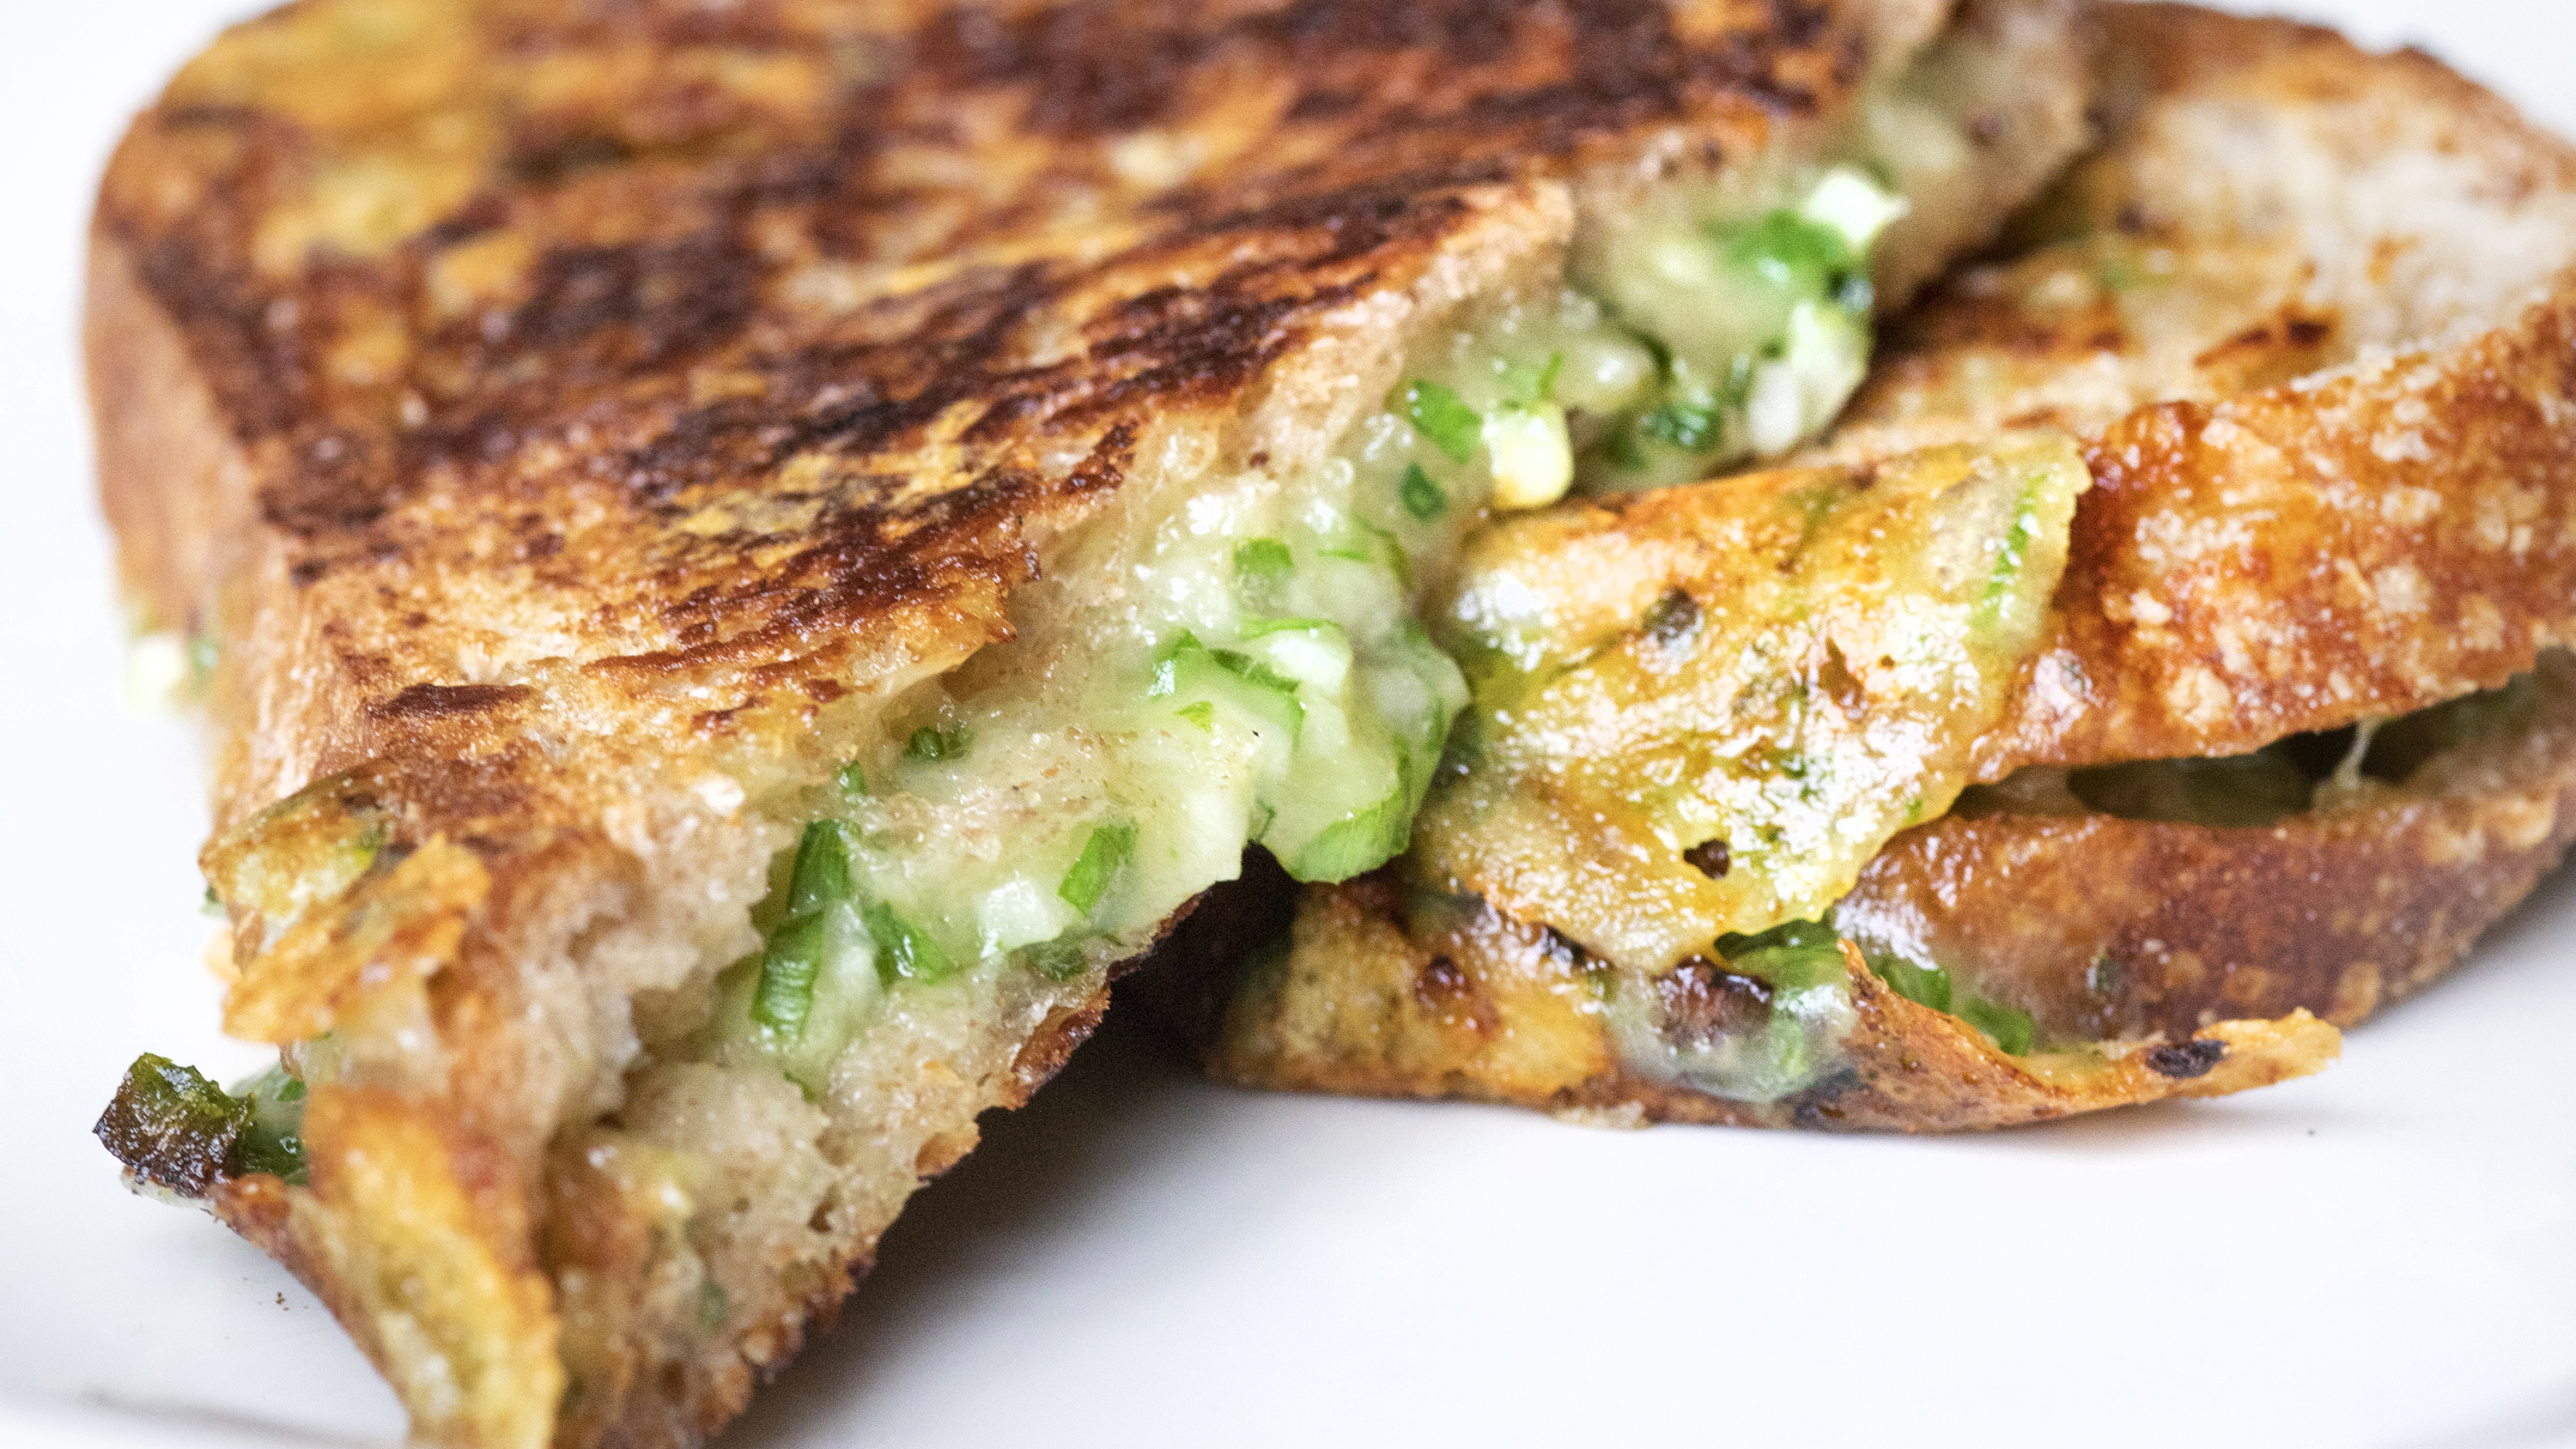 Nancy Silverton's famed grilled cheese sandwiches are back in full force, beginning this week